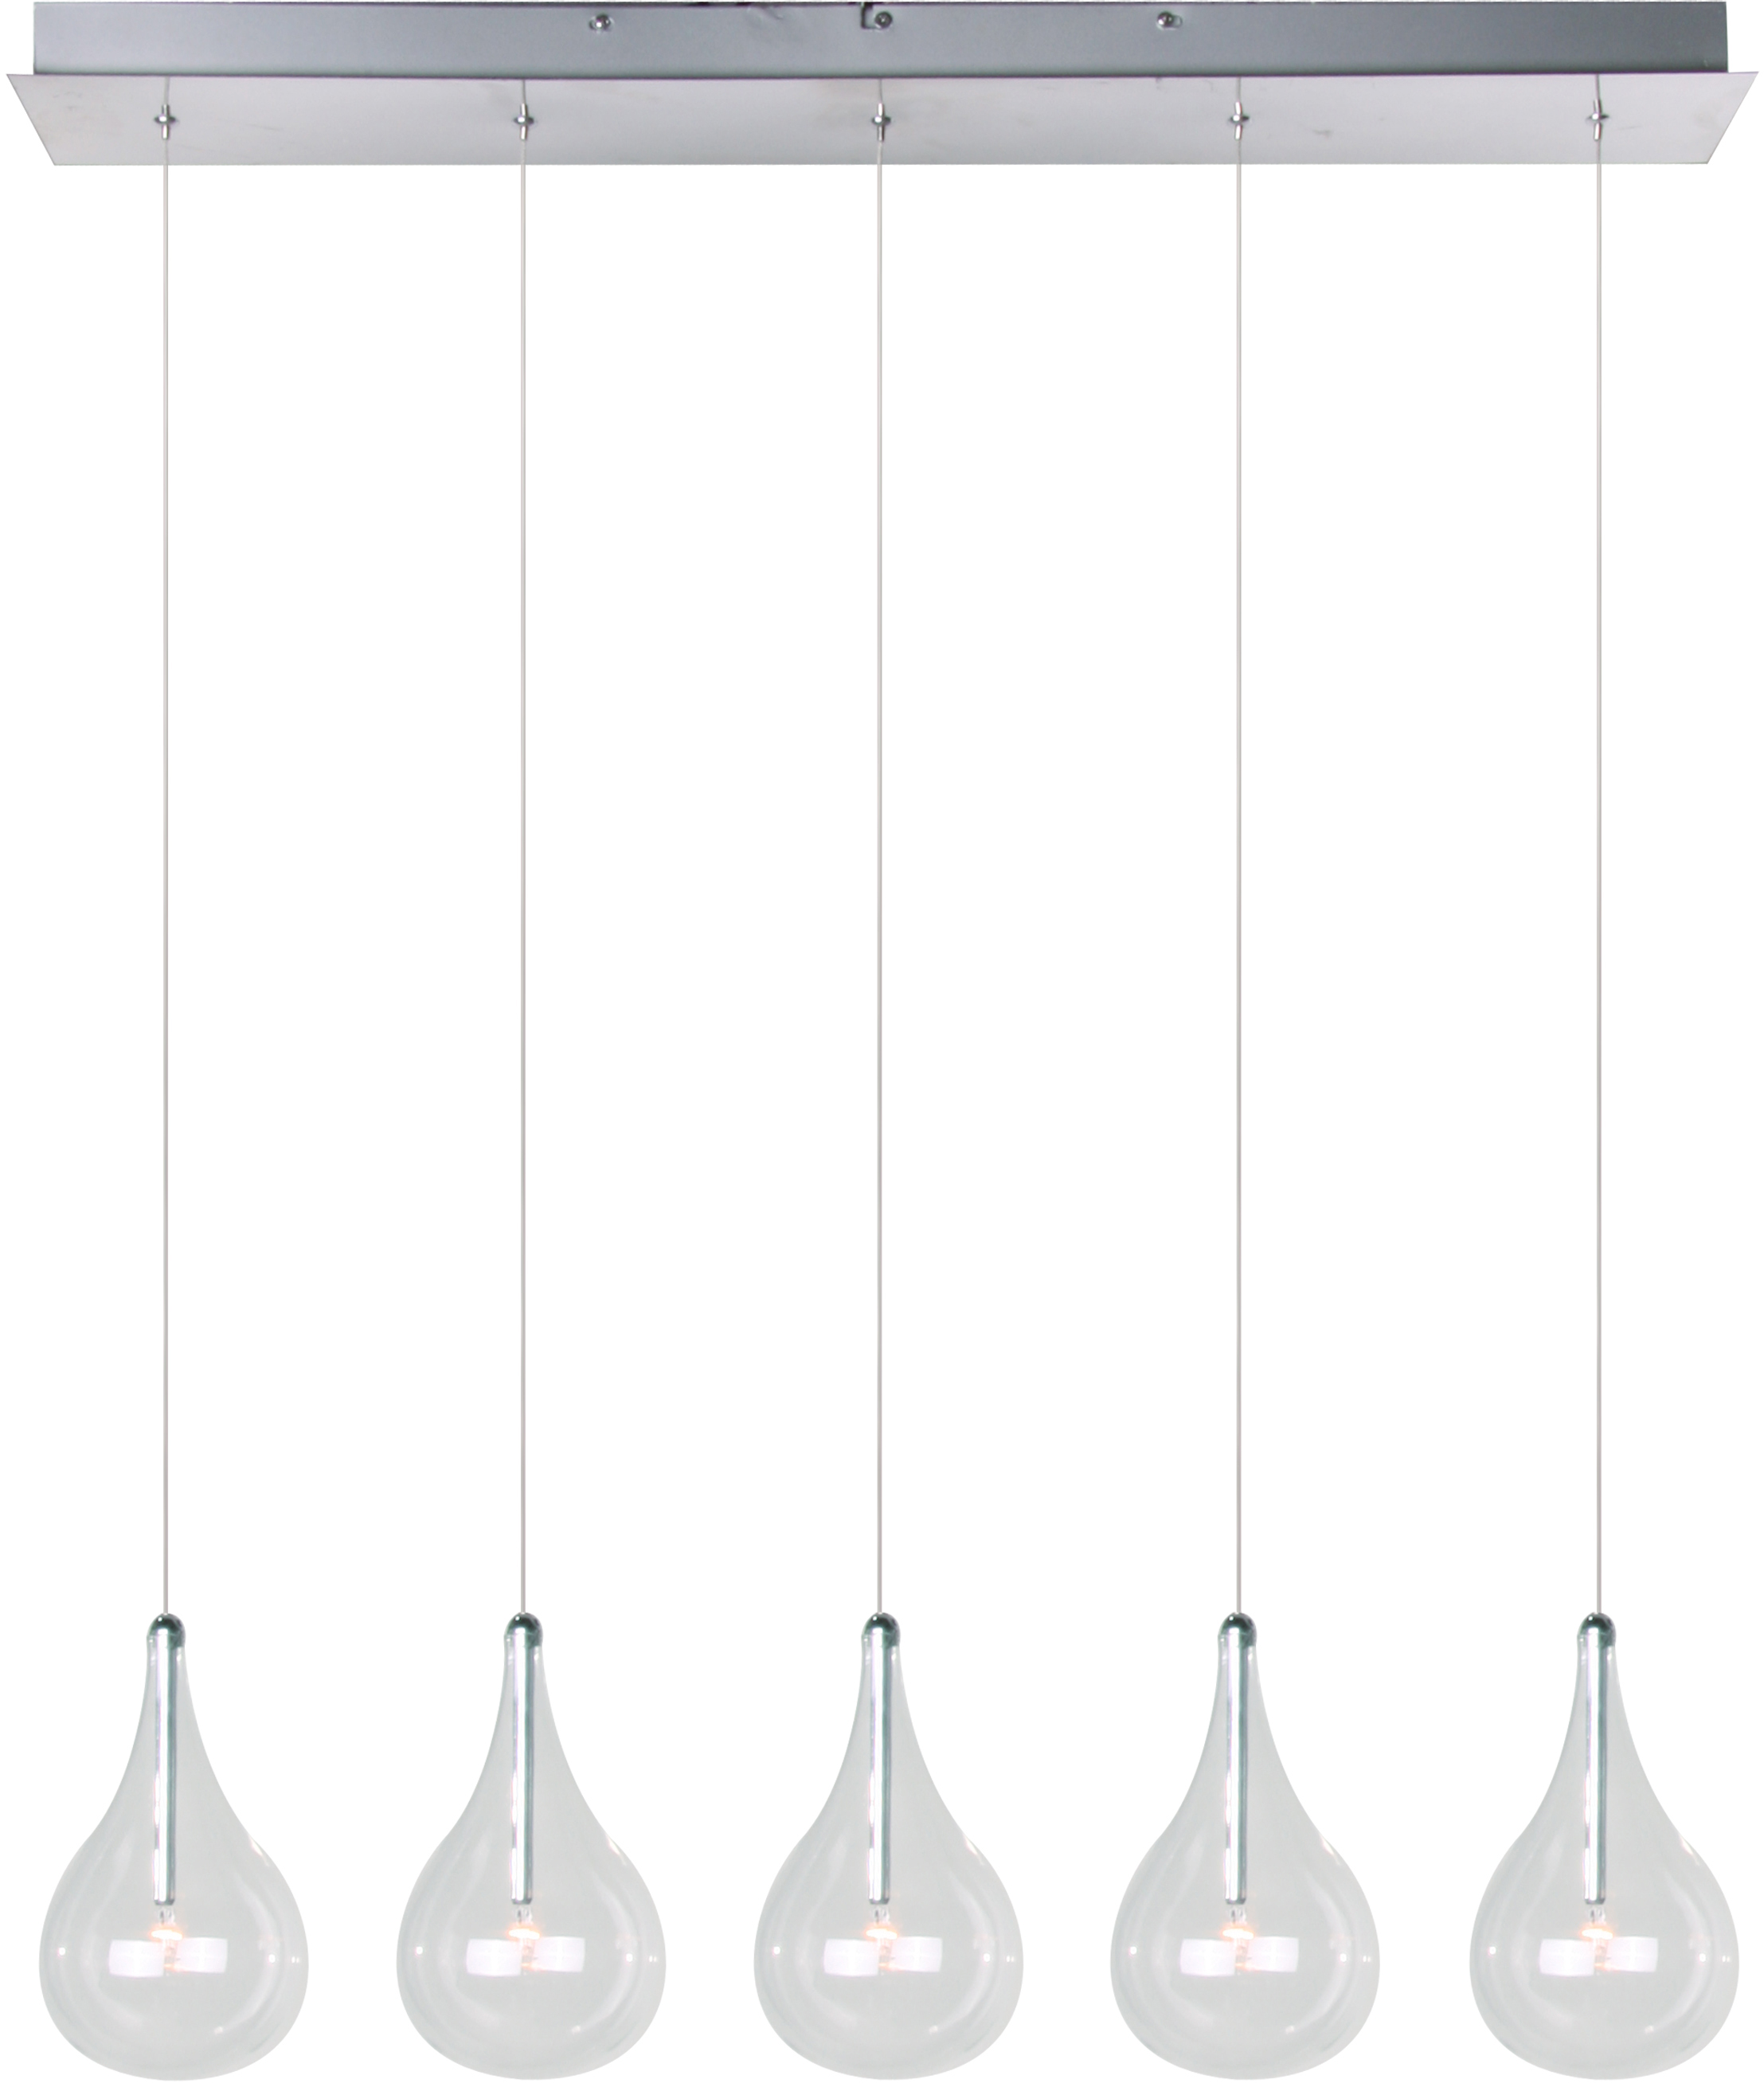 larmes 5 light pendant linear pendant maxim lighting larmes · larmes 5 light pendant